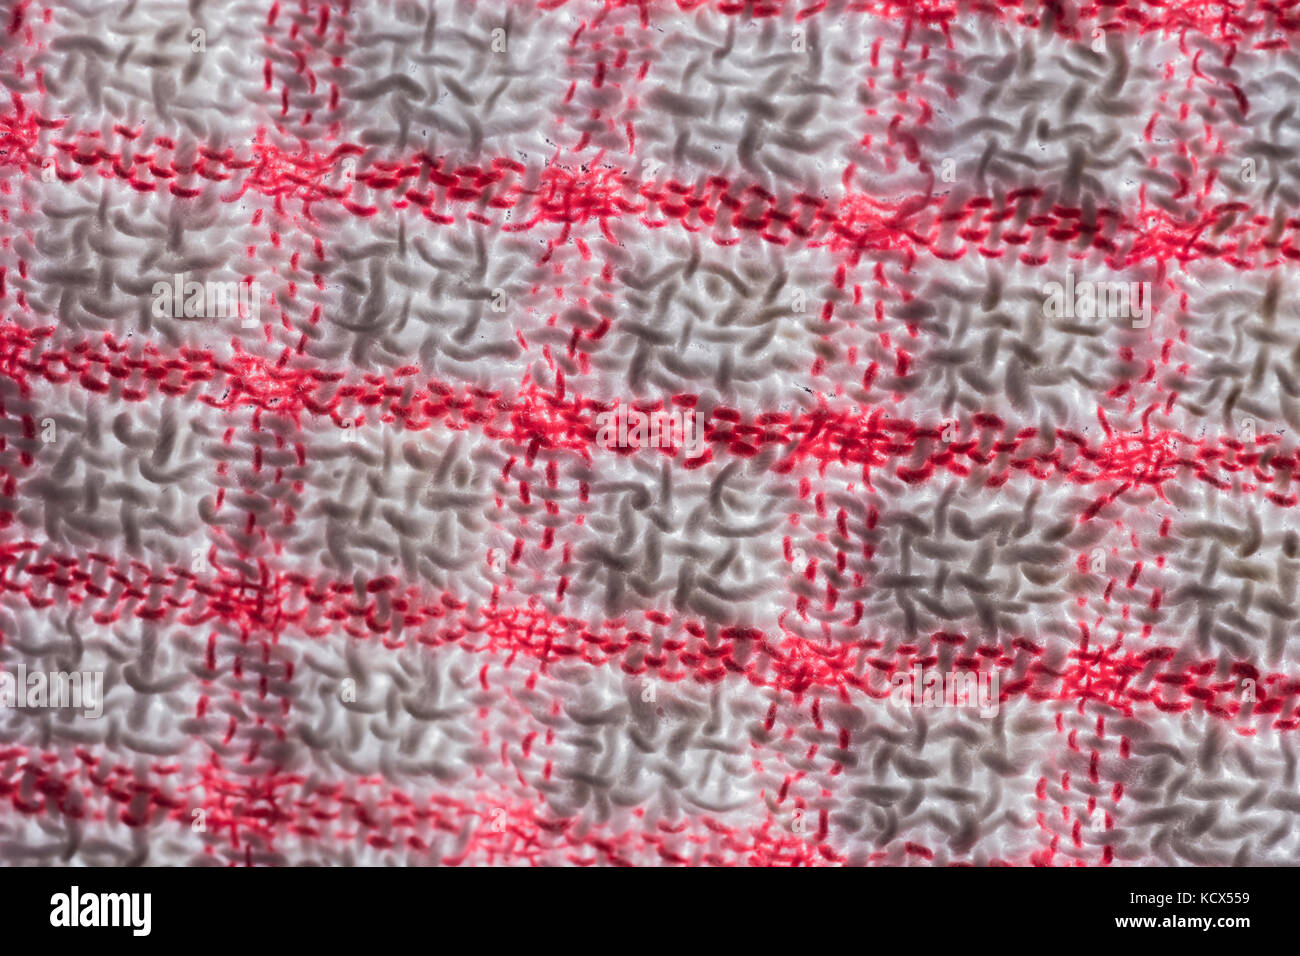 Macro-photo of the threads of a teacloth. - Stock Image